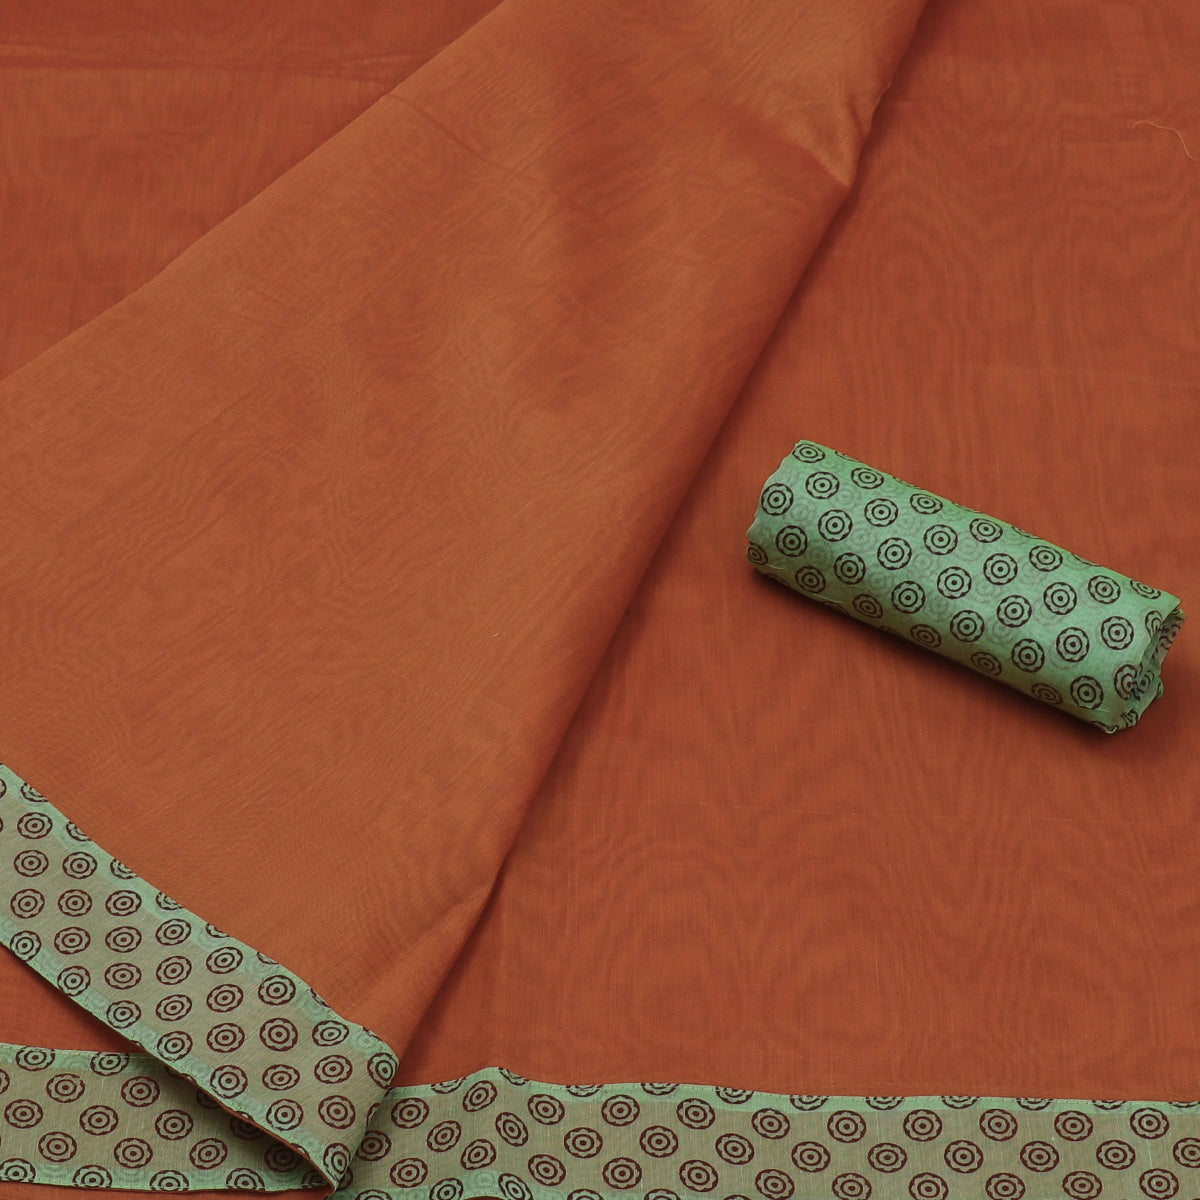 Mercerised Cotton Saree Orange and light Green with Patch Work for Rs.Rs. 1390.00 | Cotton Sarees Sarees by Prashanti Sarees